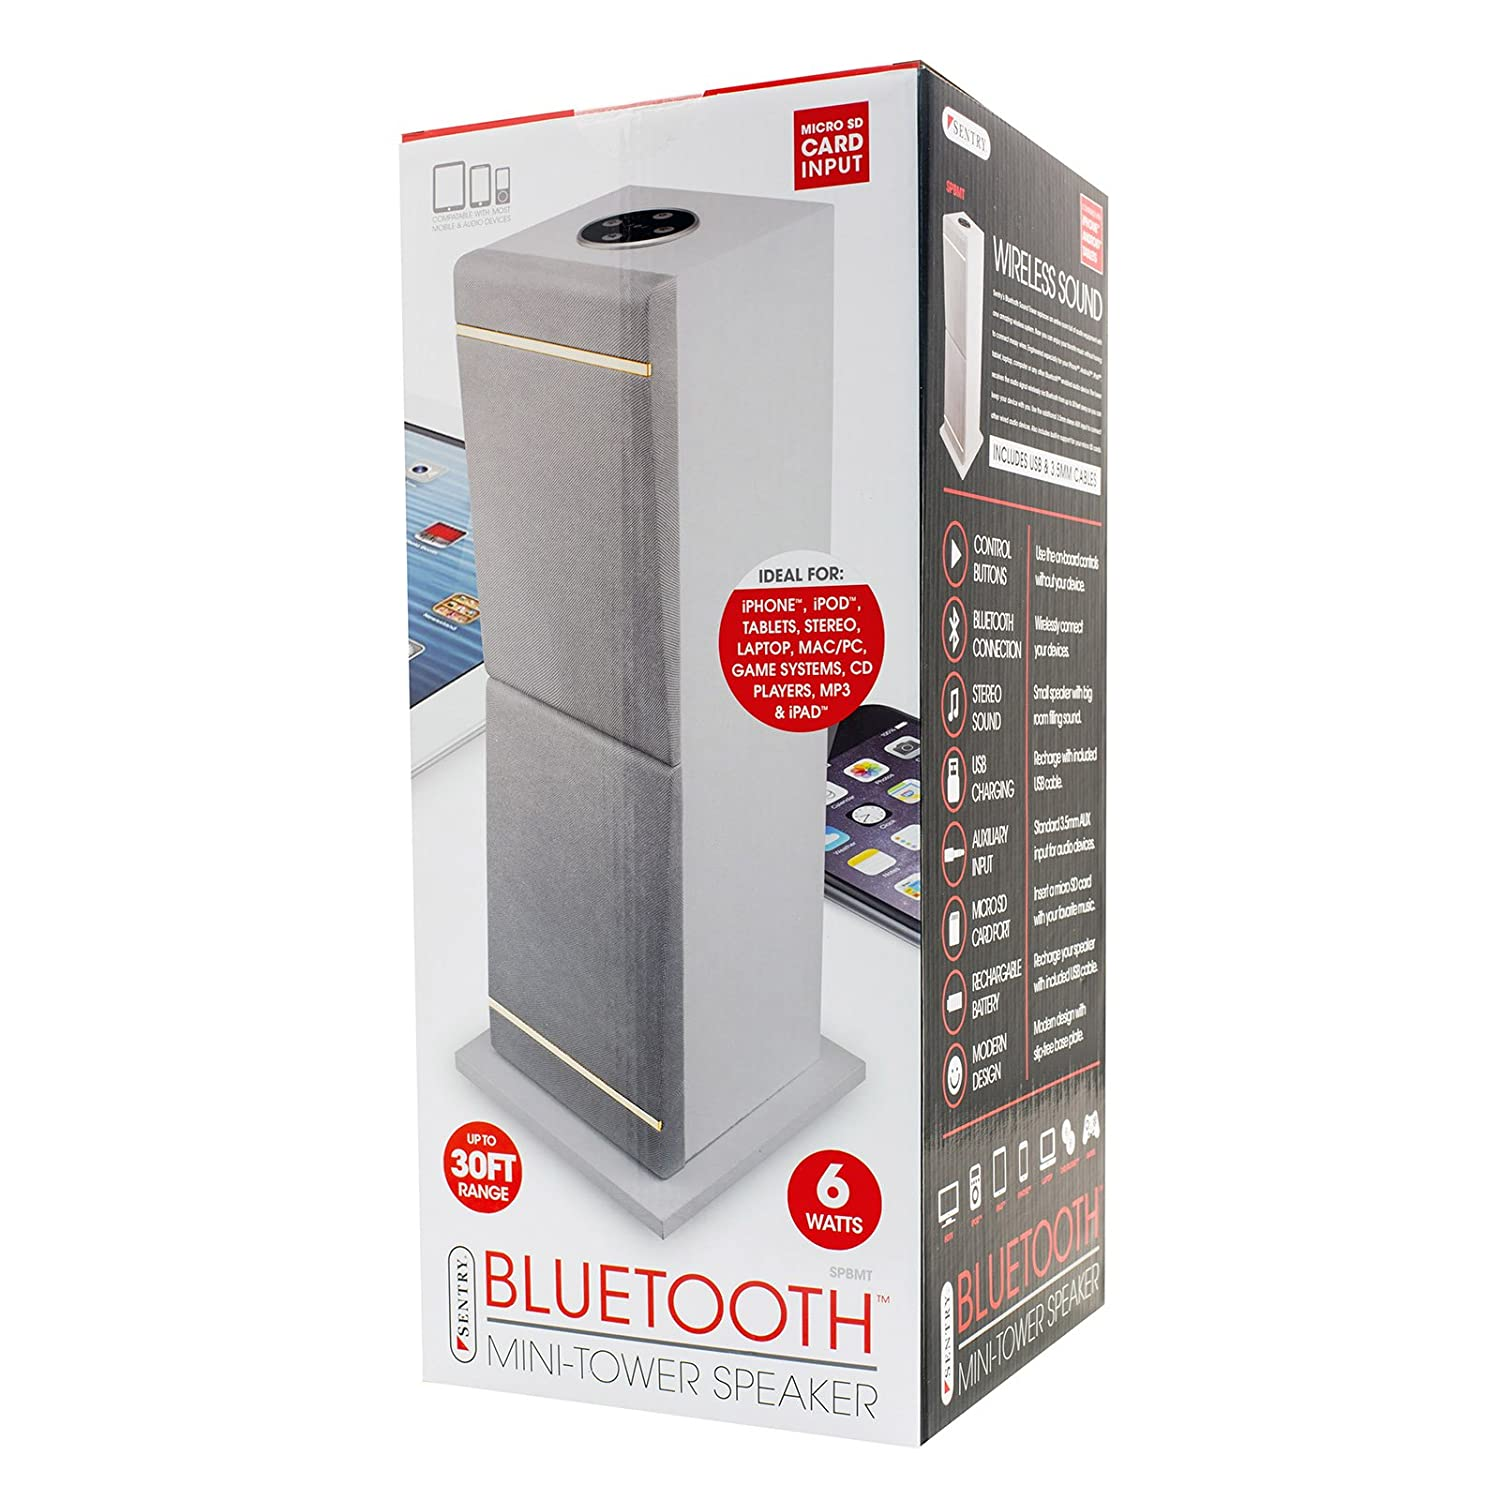 Amazon.com: Sentry Bluetoot Mini Tower Speaker Compatible with Most Mobile and Audio Devices: Electronics